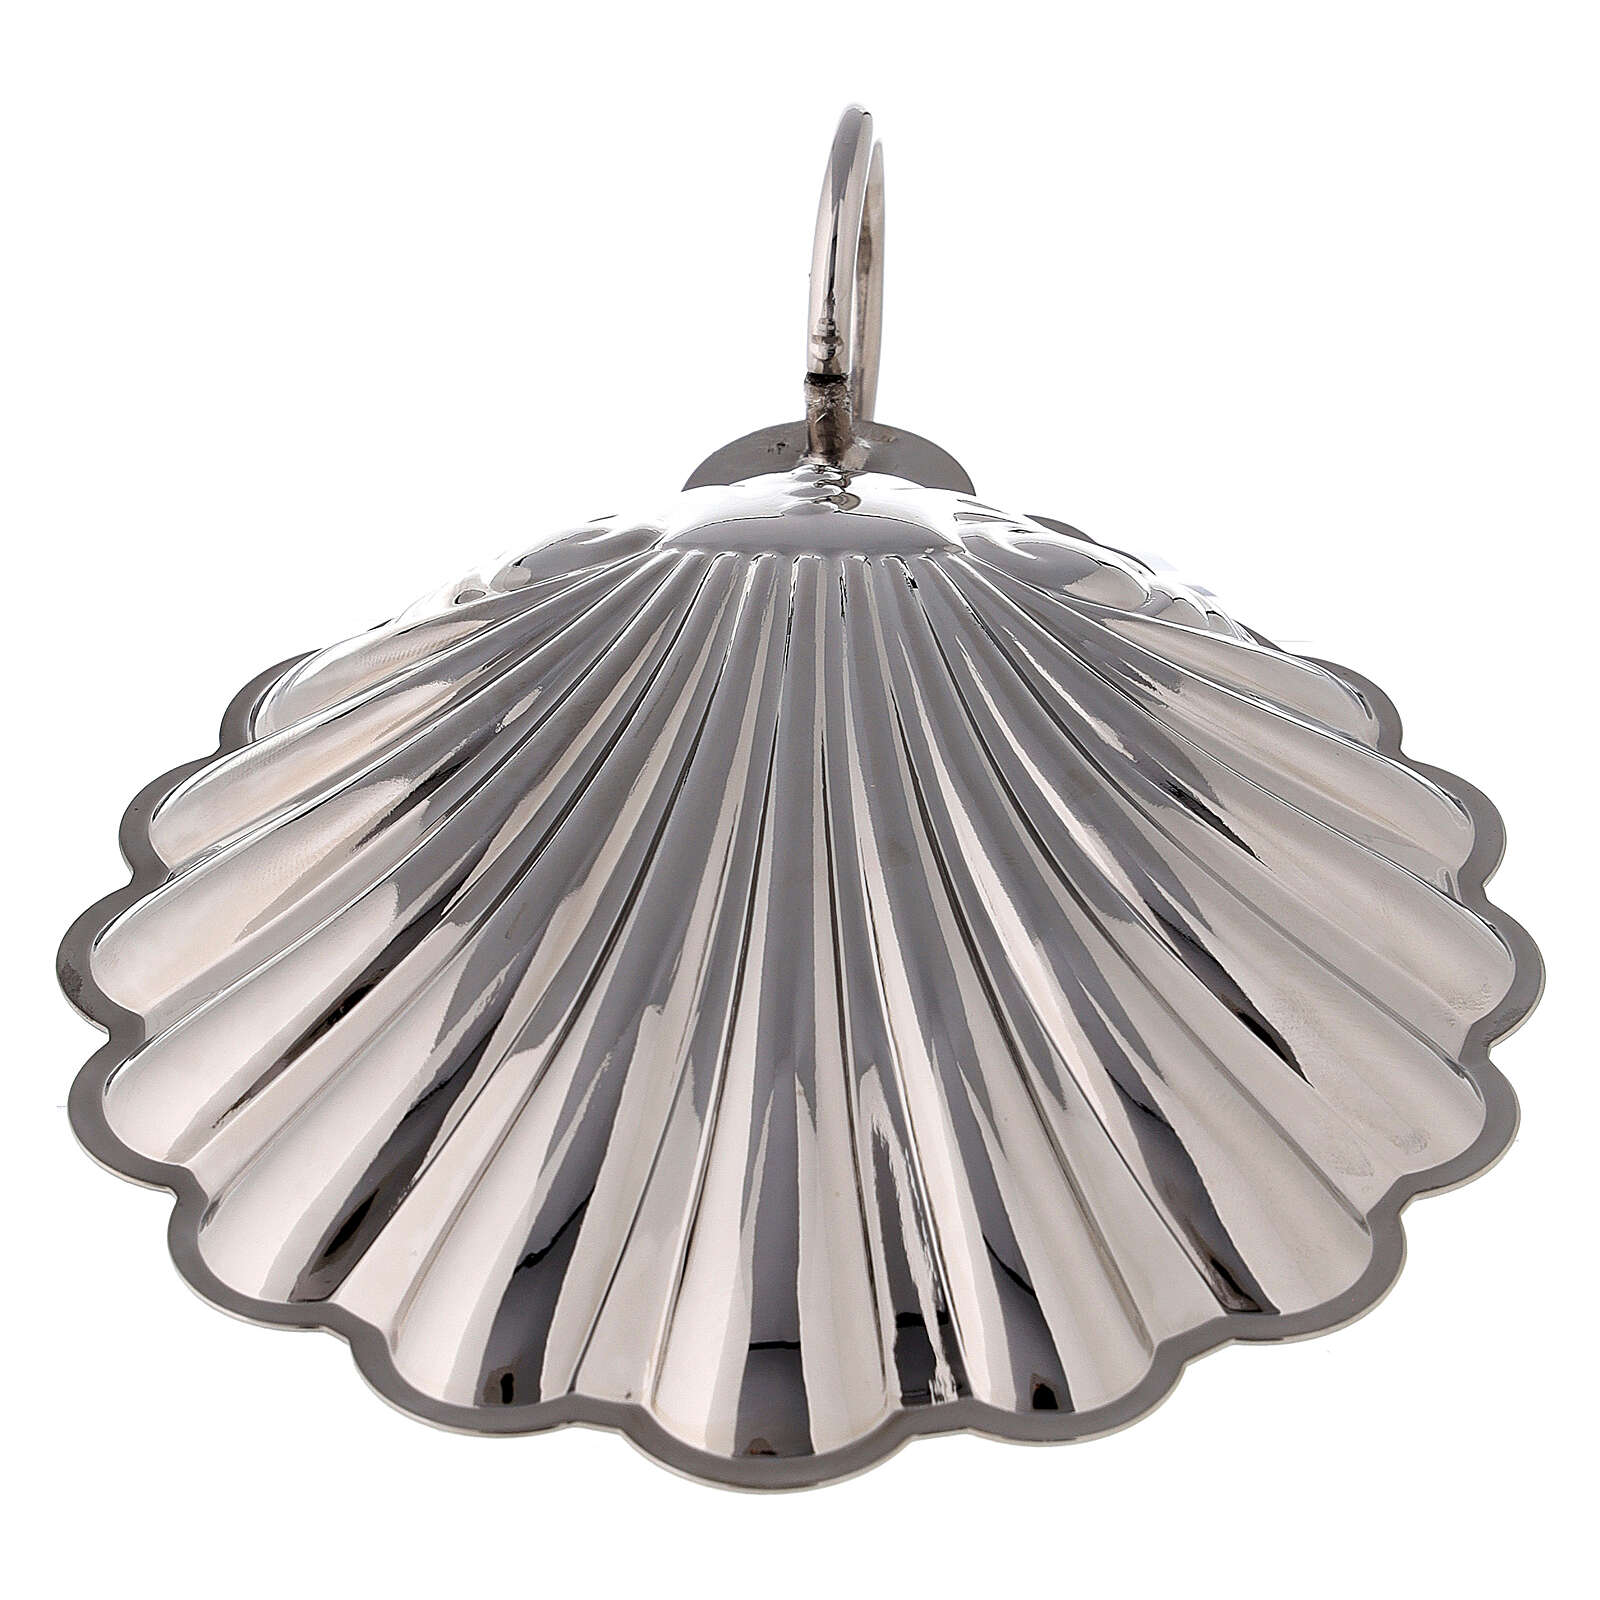 Baptismal shell silver-plated brass with handle 3